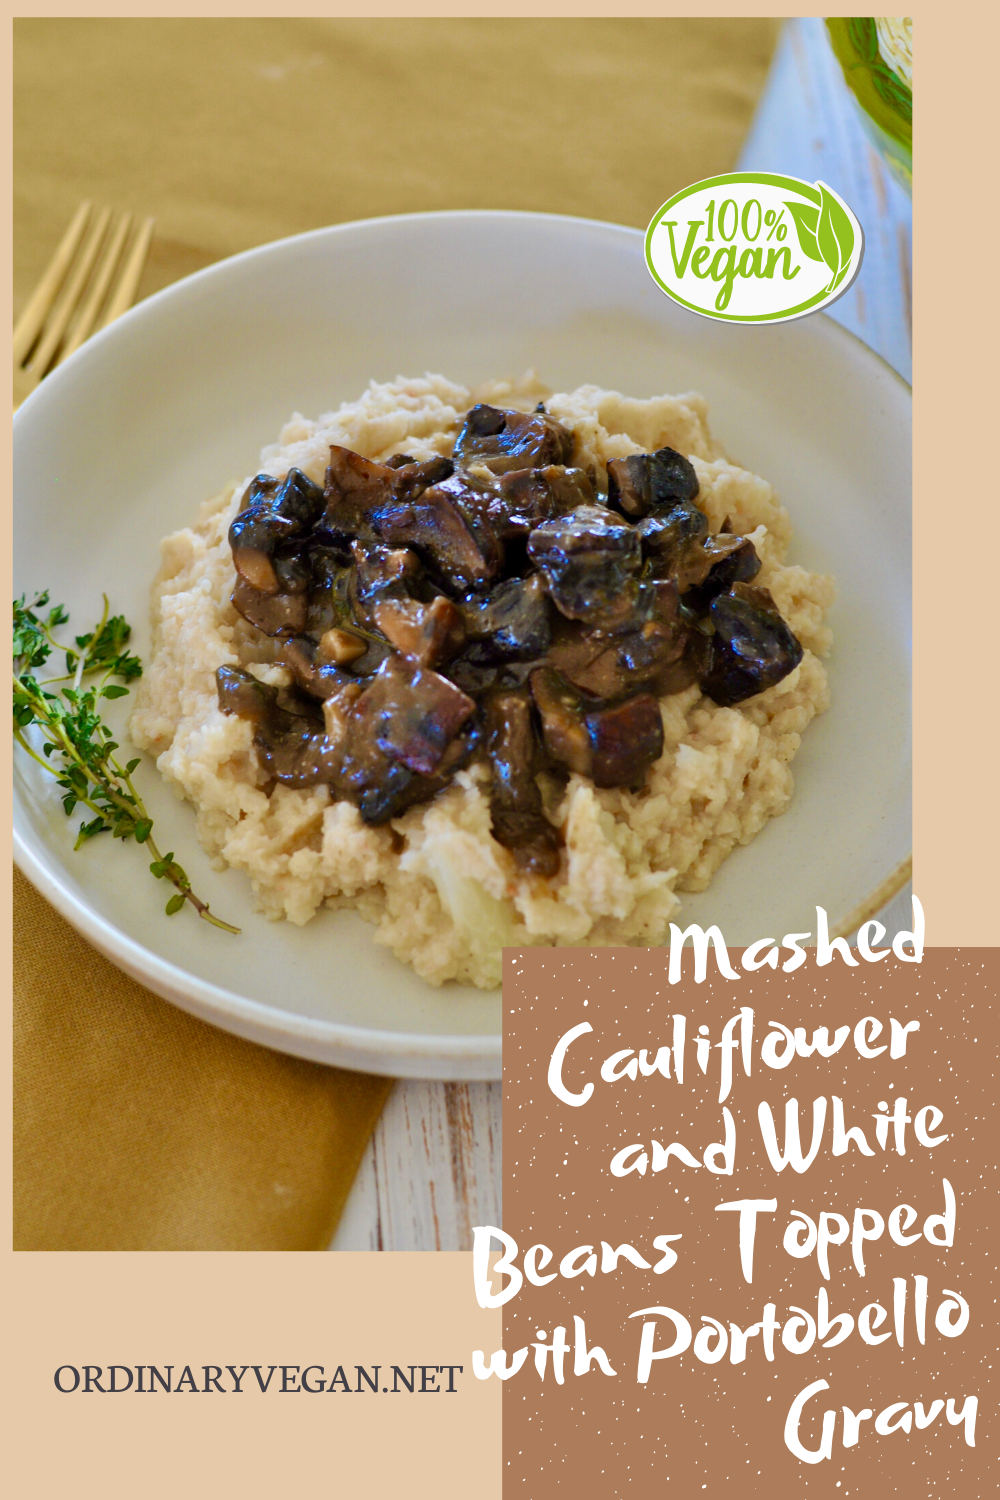 This mashed cauliflower and white beans is a wonderful high protein, low calorie substitute for traditional mashed potatoes. Top with this delicious gravy. (#vegan) ordinaryvegan